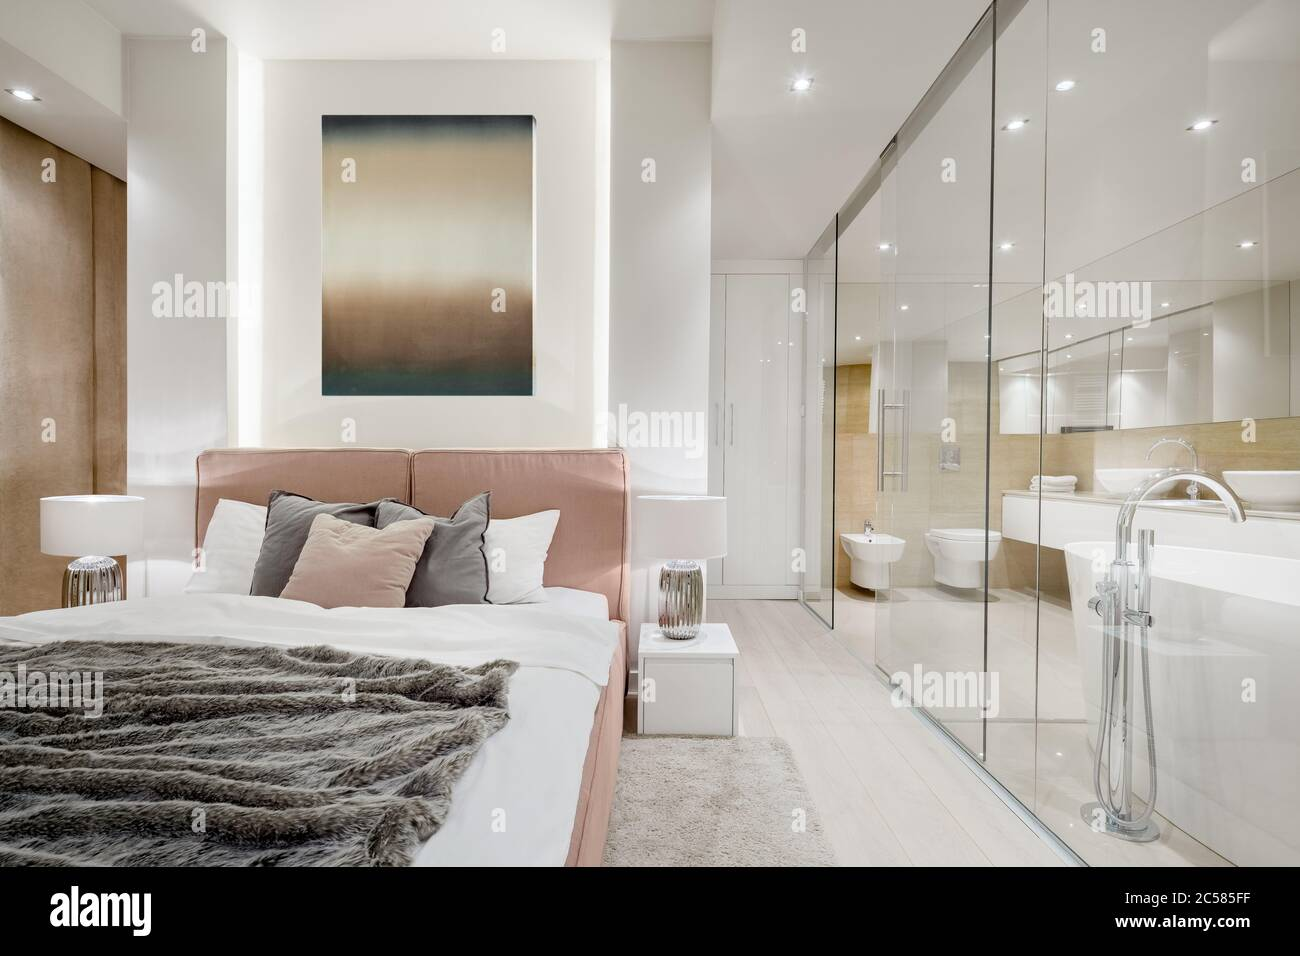 Luxury Master Bedroom With Double Bed Next To Elegant Bathroom Behind Glass Wall Stock Photo Alamy